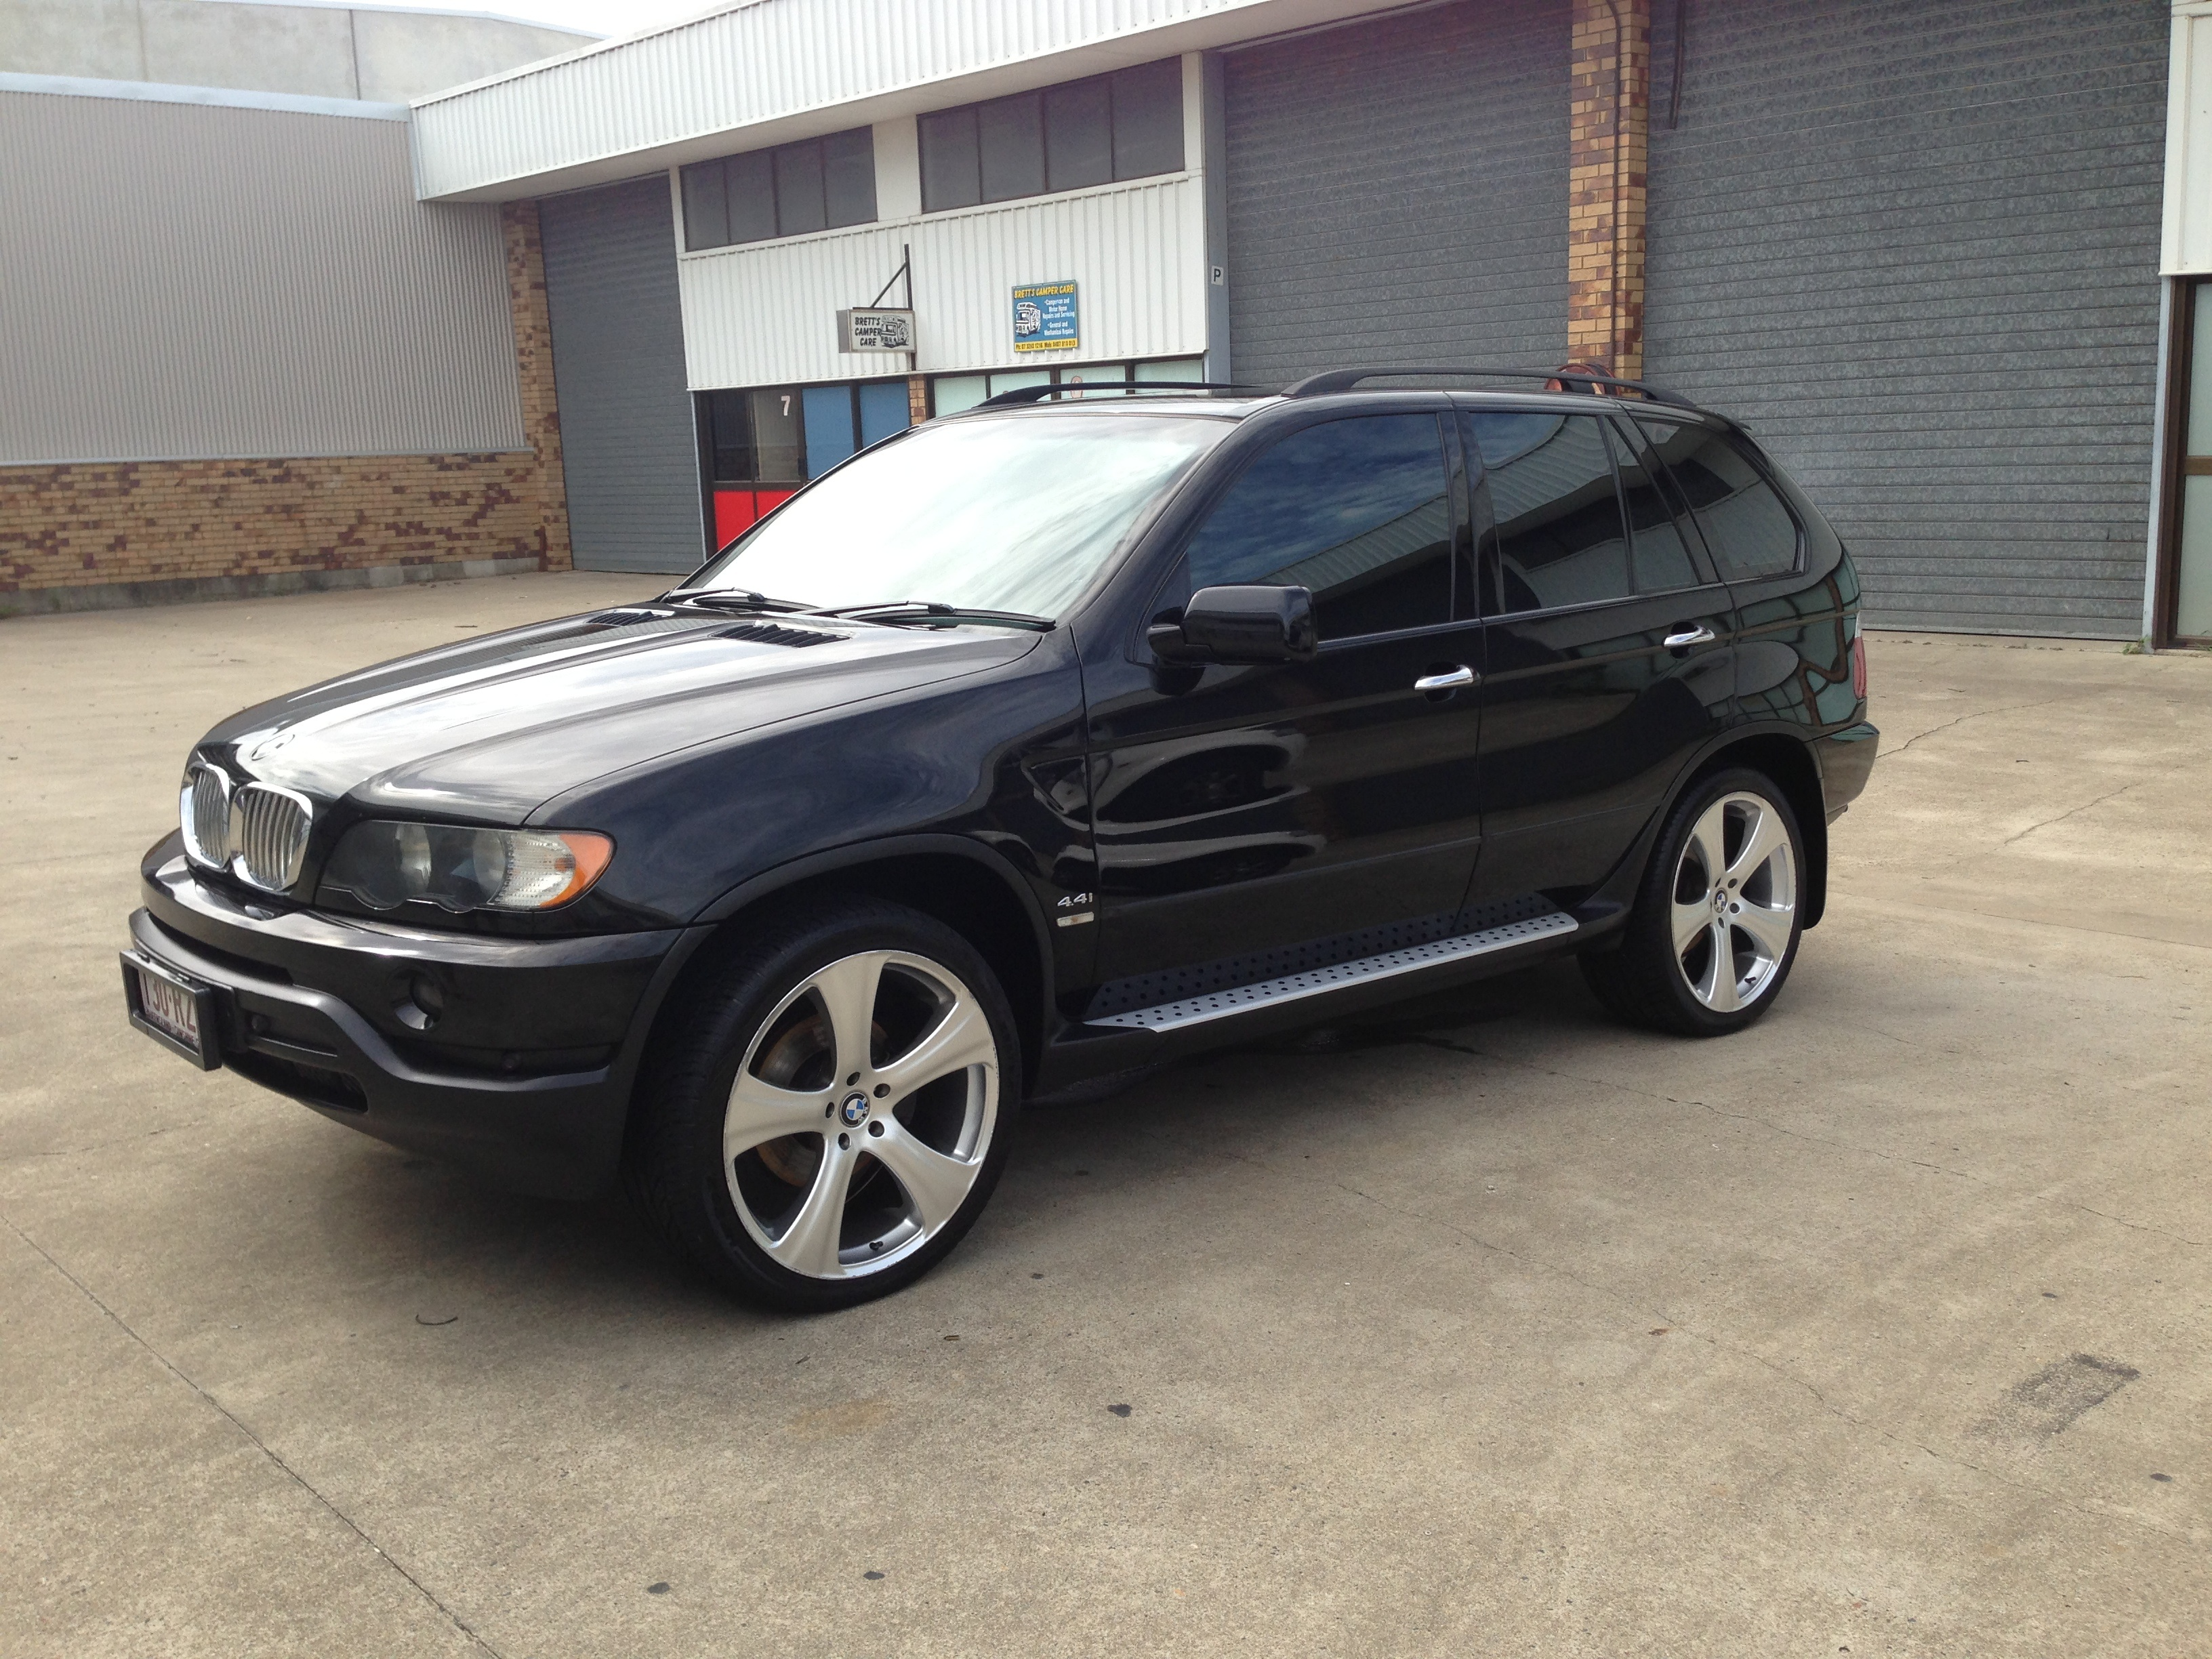 2002 bmw x5 4 4i e53 car sales qld brisbane north. Black Bedroom Furniture Sets. Home Design Ideas